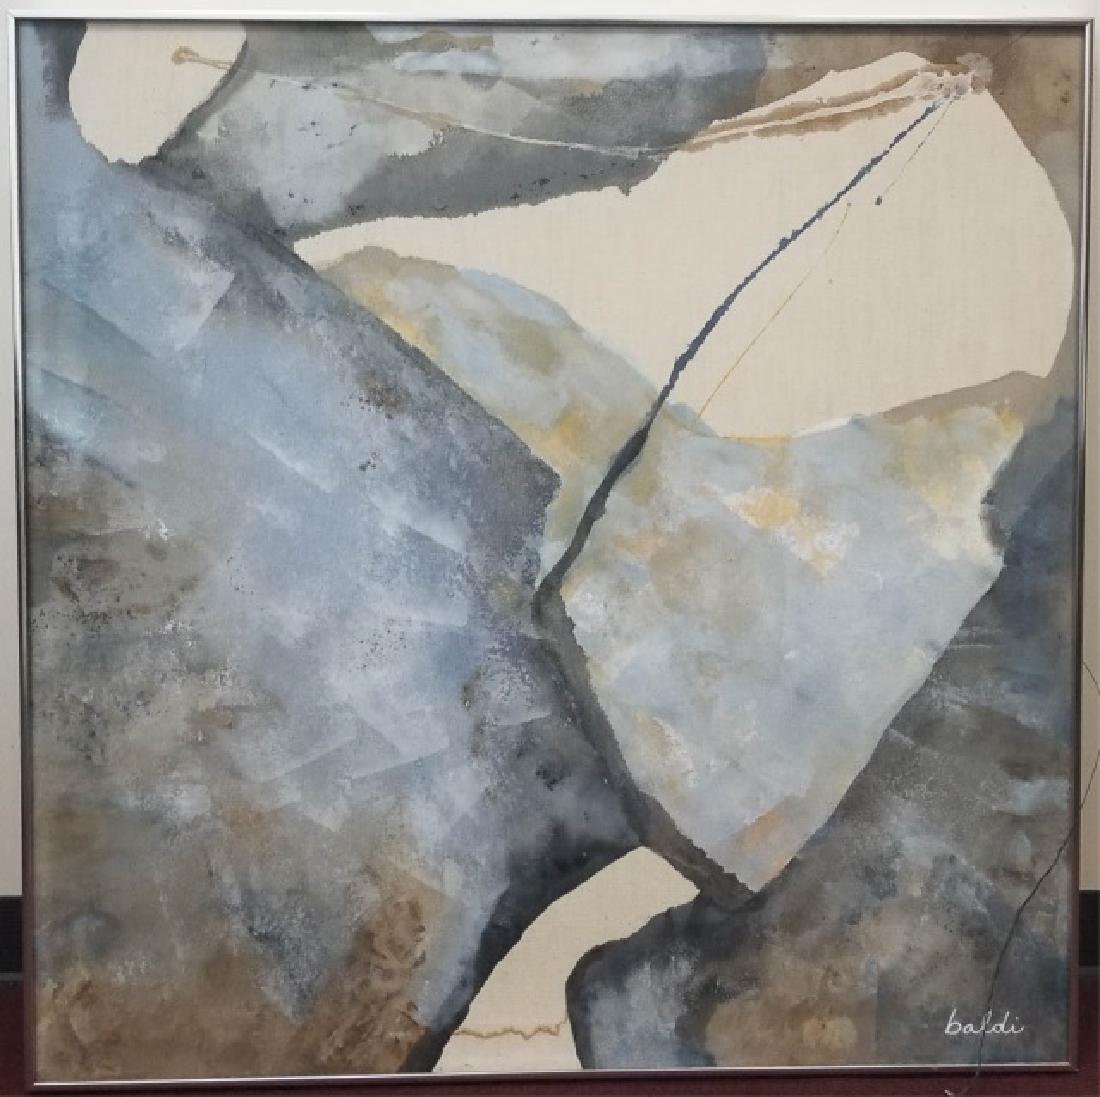 Baldi-Signed Framed Abstract Oil Painting